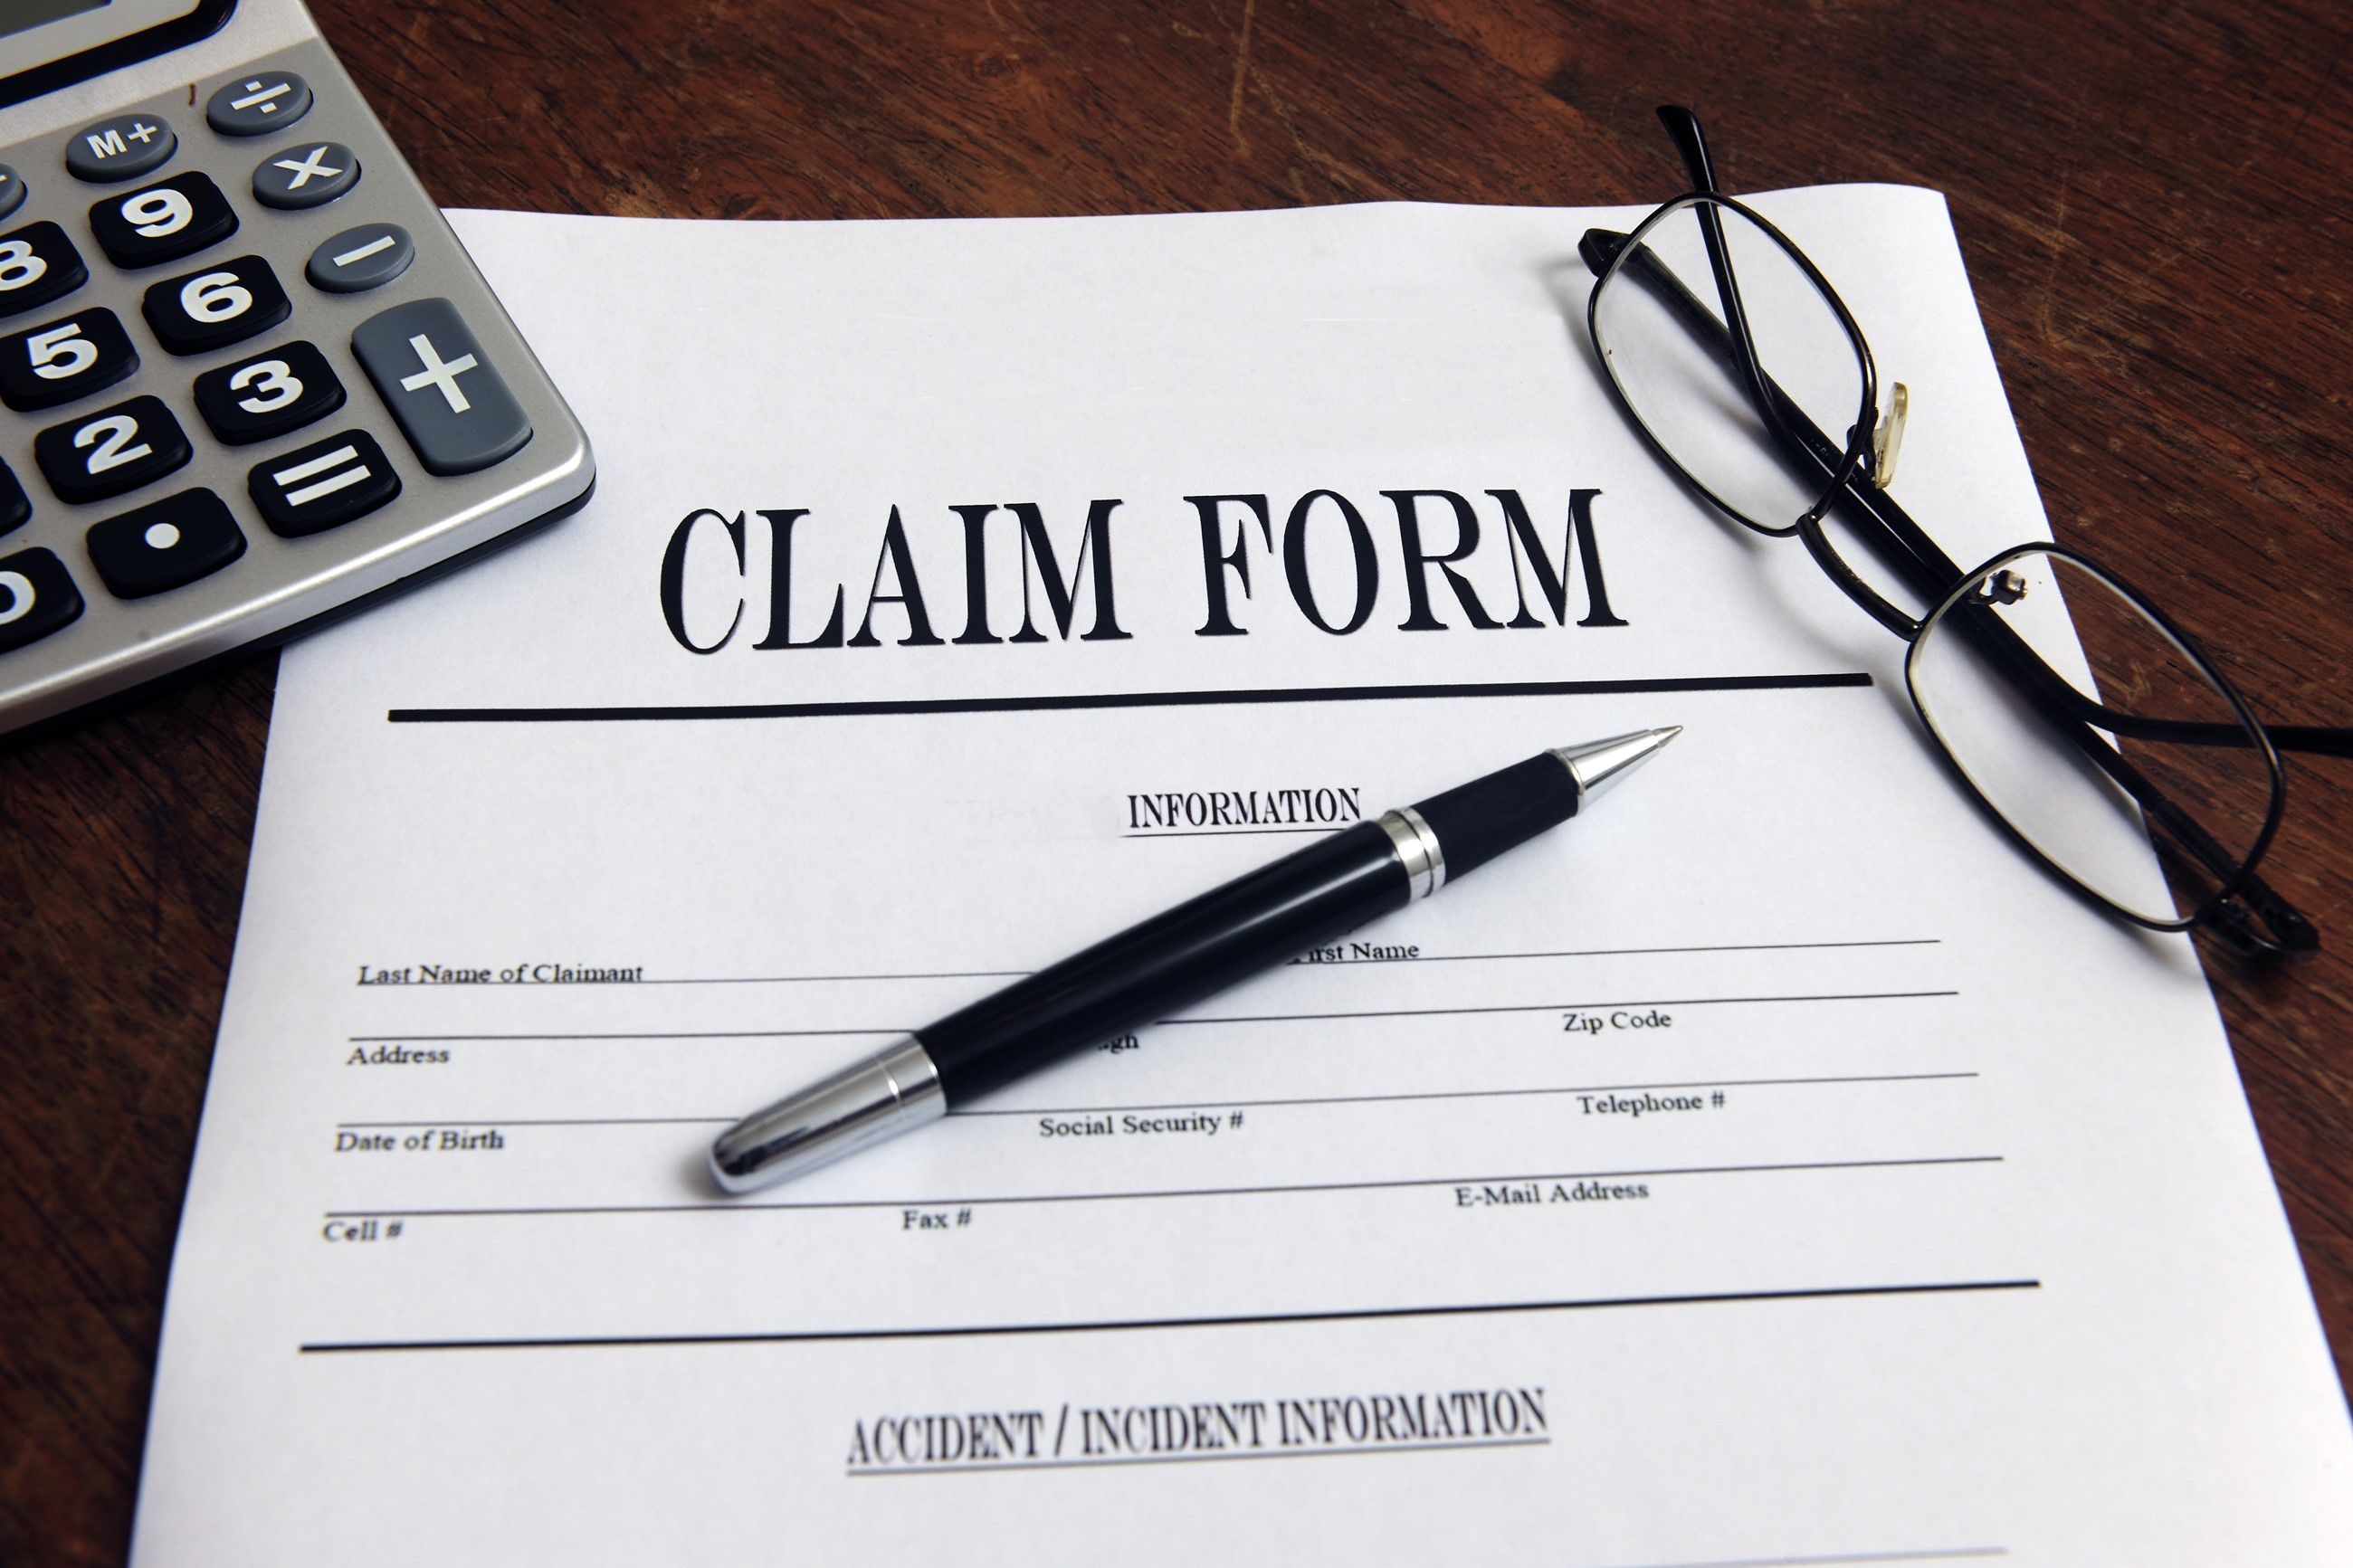 Claim Form with pen, calculator and eyeglasses on top of desk